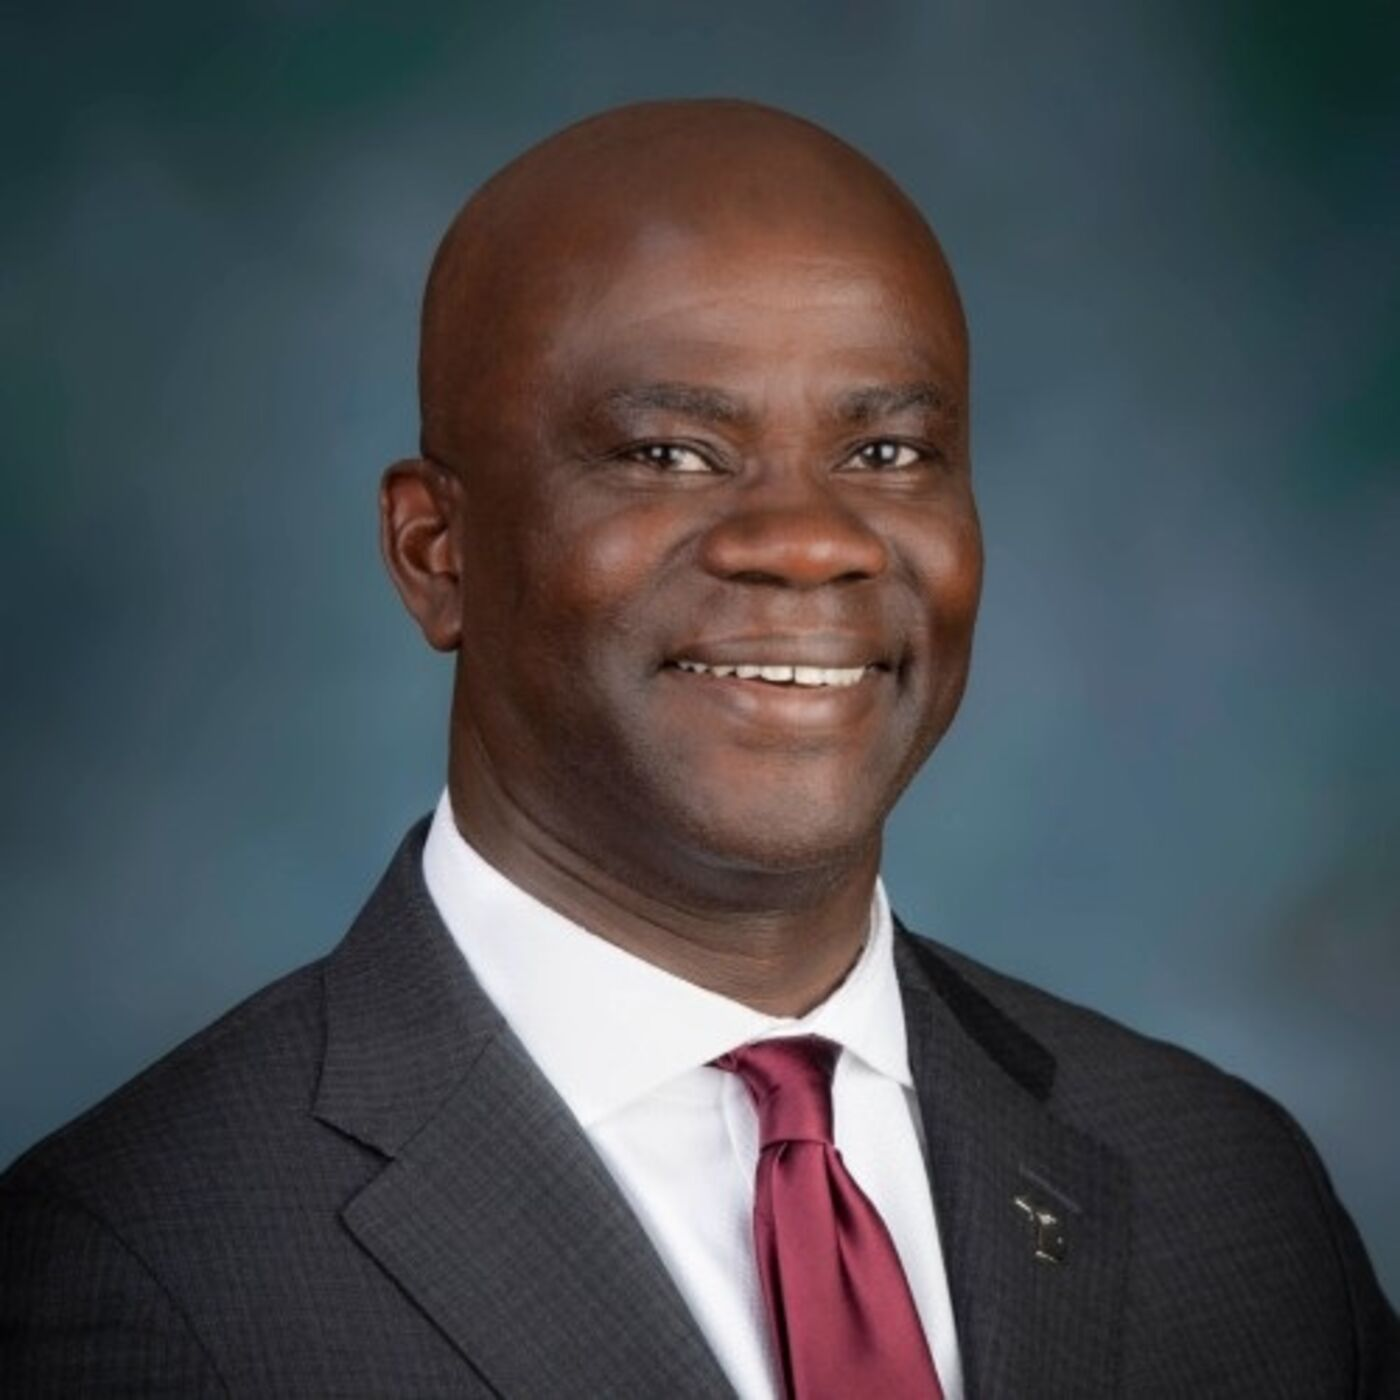 MDOT year in review with Director Paul C. Ajegba